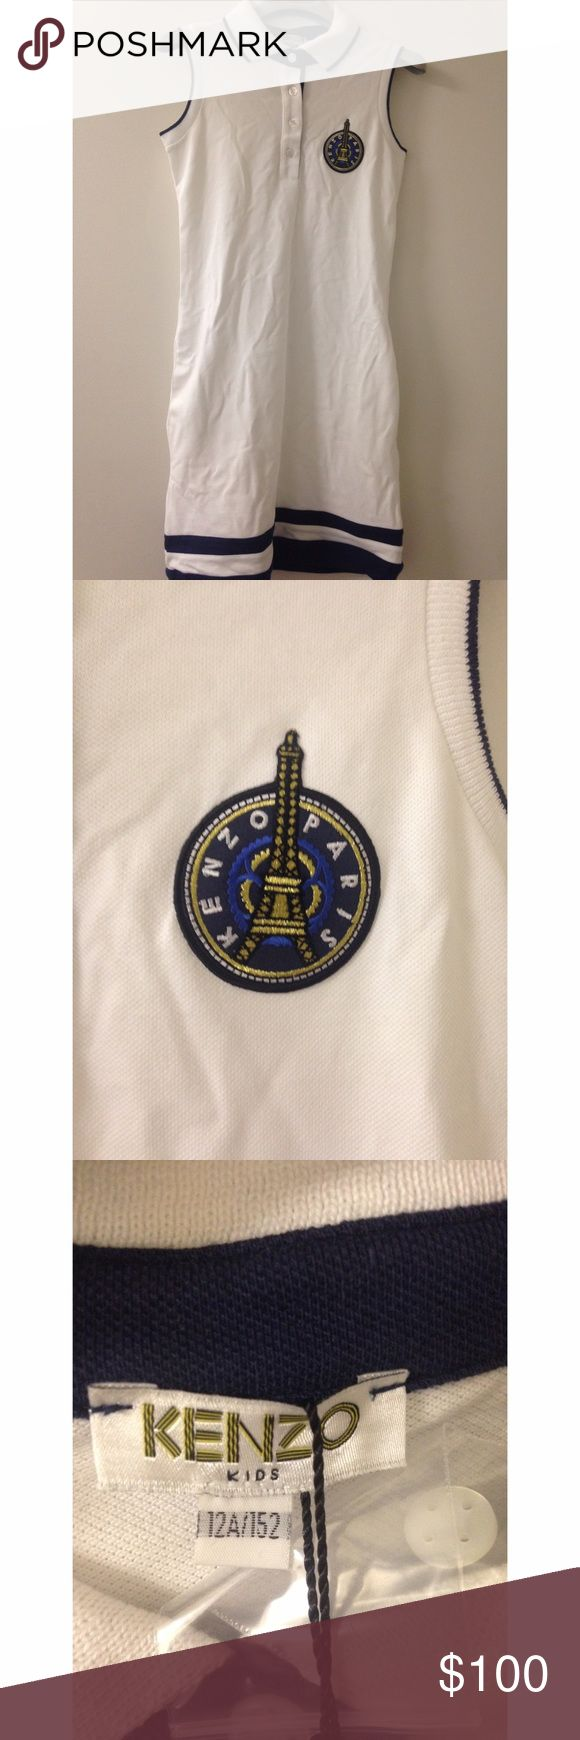 Kenzo Kids White Eiffel Tower Badge Polo Dress Brand New w/ Tags - 100% Authentic    - 95% Cotton and 5% Elastane - Machine washable 30 degrees  🚫I will not respond to anyone asking me to email me regarding my items. I will report and block you 🚫  ✨Make an offer✨ Kenzo Dresses Casual